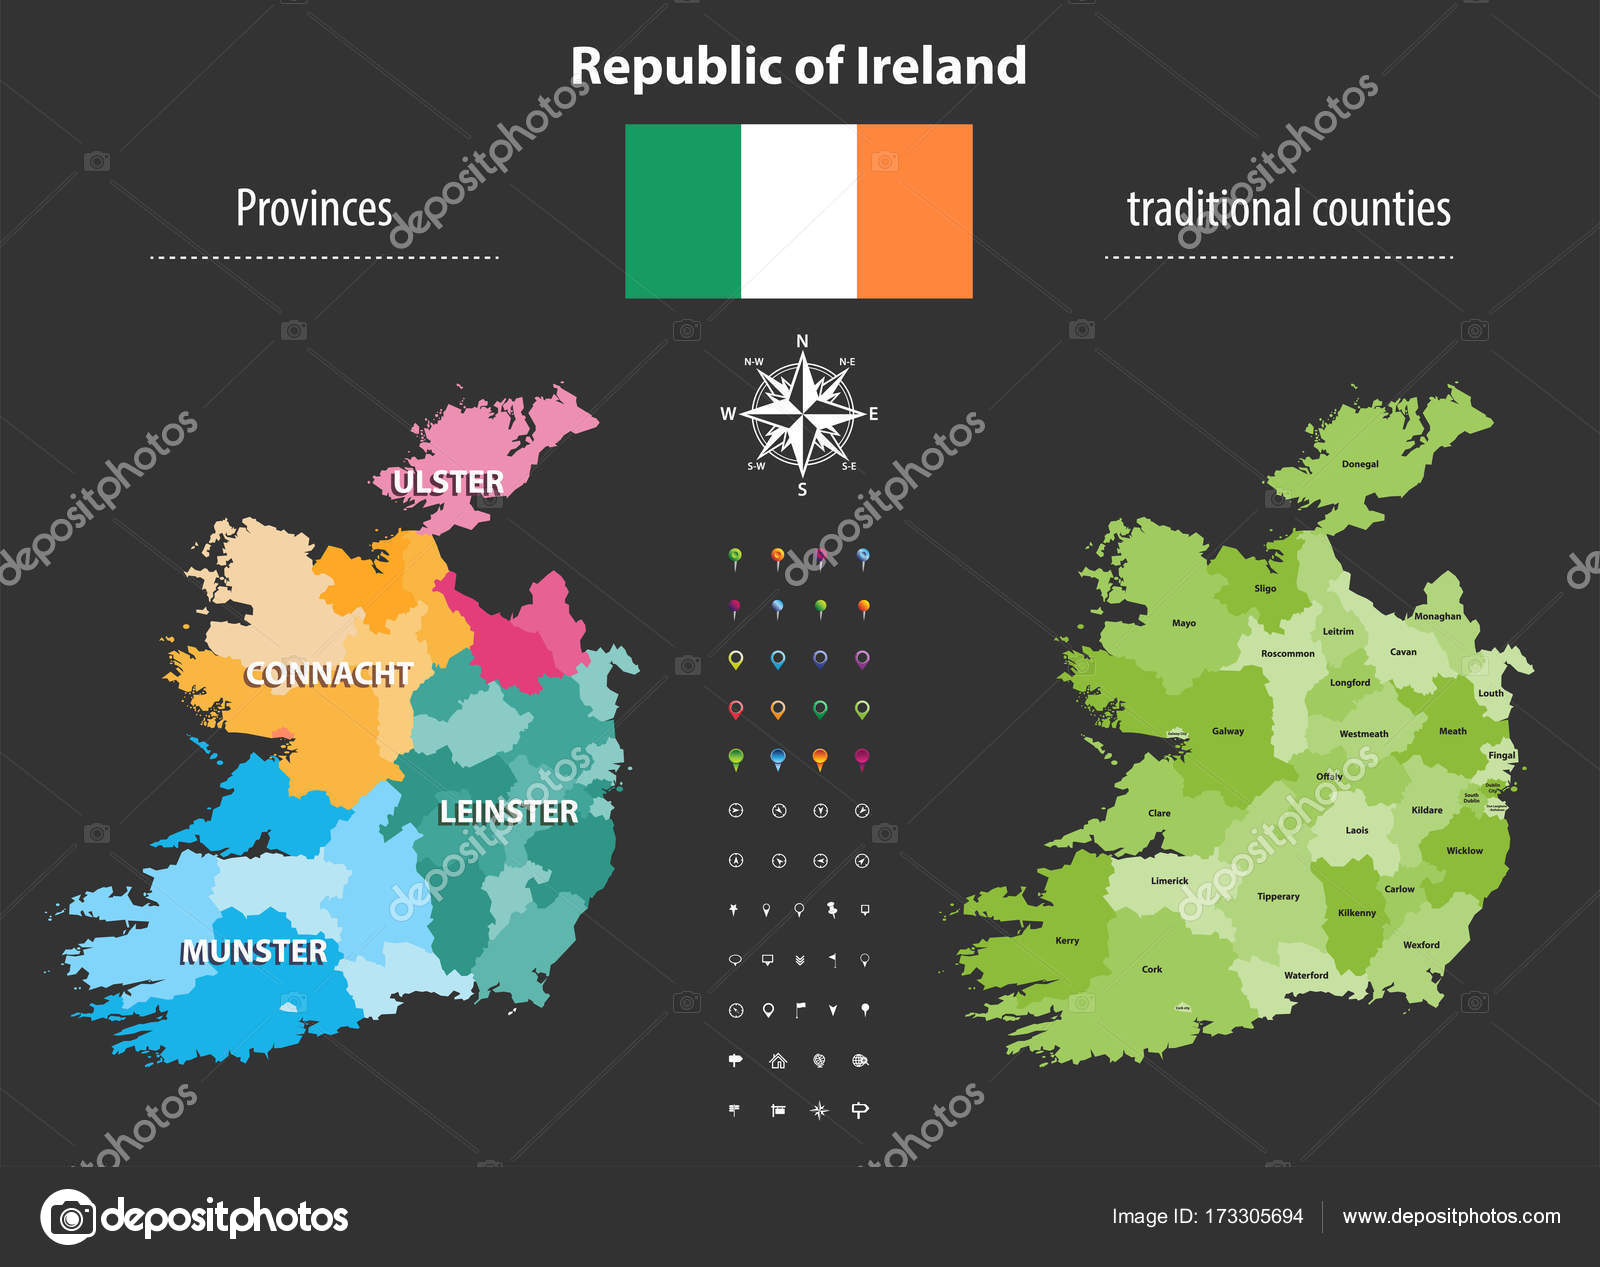 Map Of Ireland With Counties And Provinces.Republic Of Ireland Provinces And Traditional Counties Vector Map